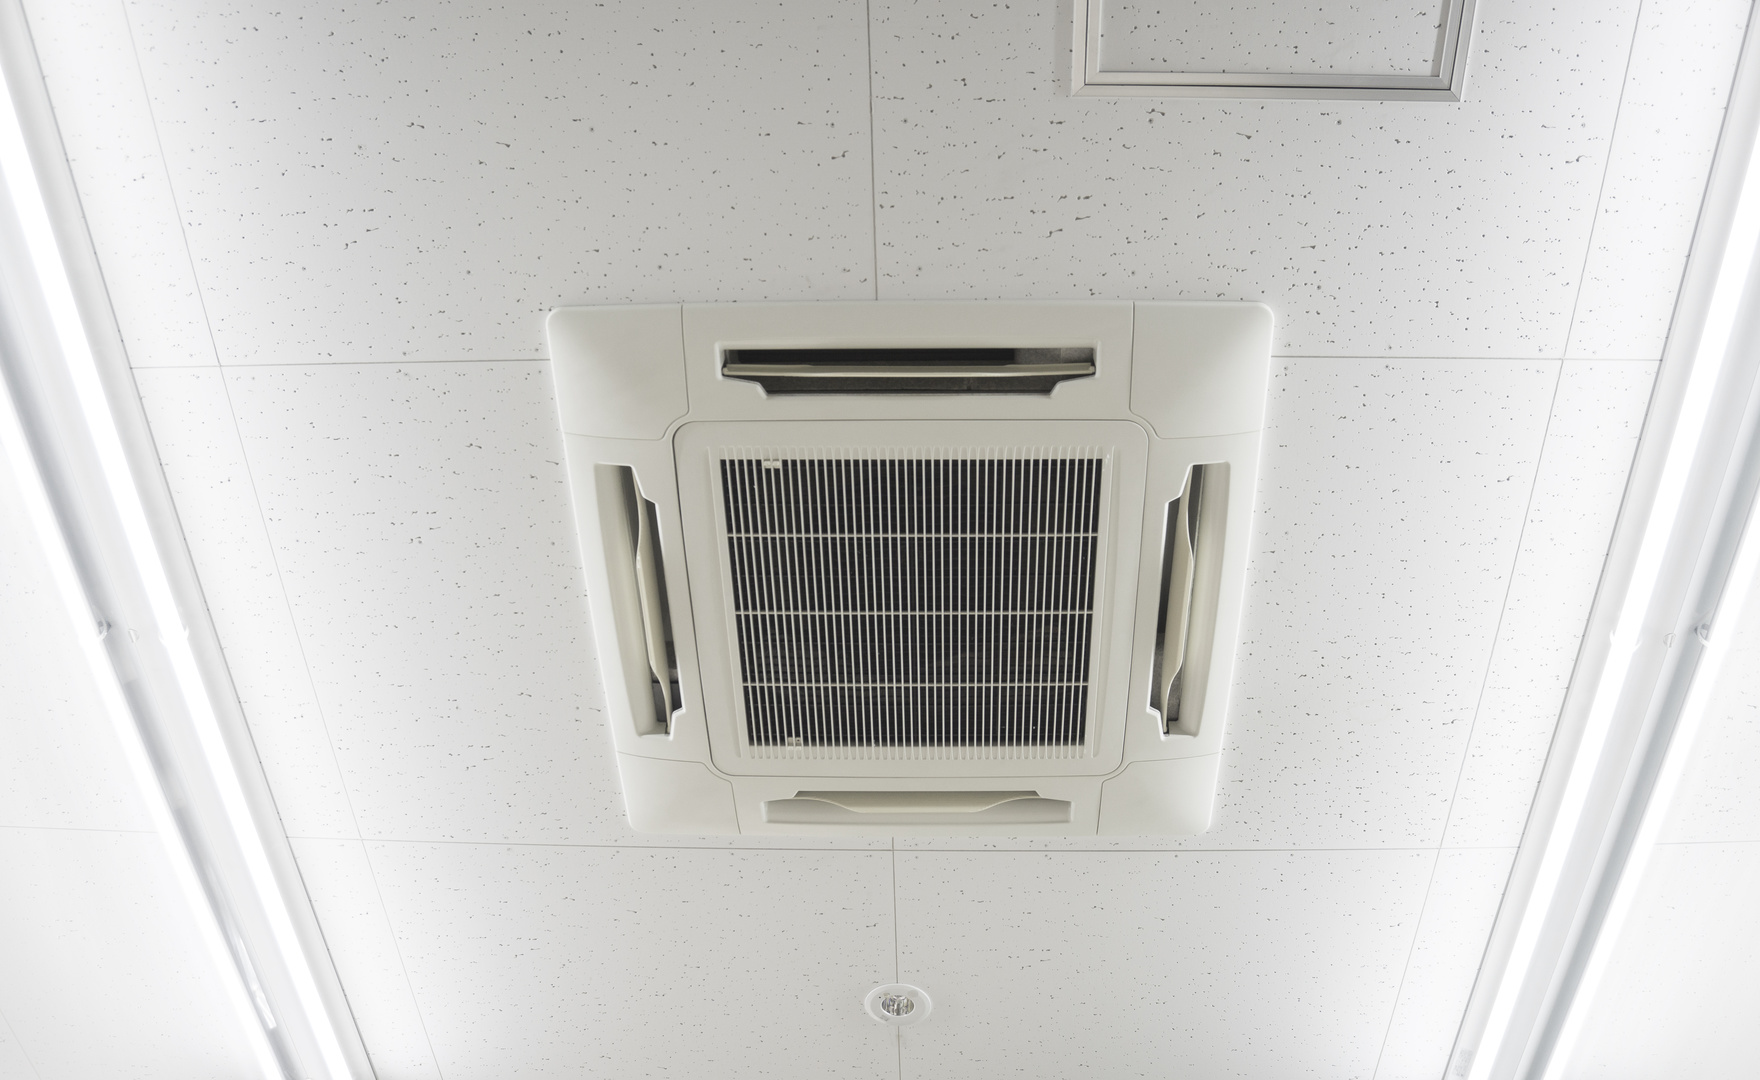 Ceiling Mounted Air Conditioning